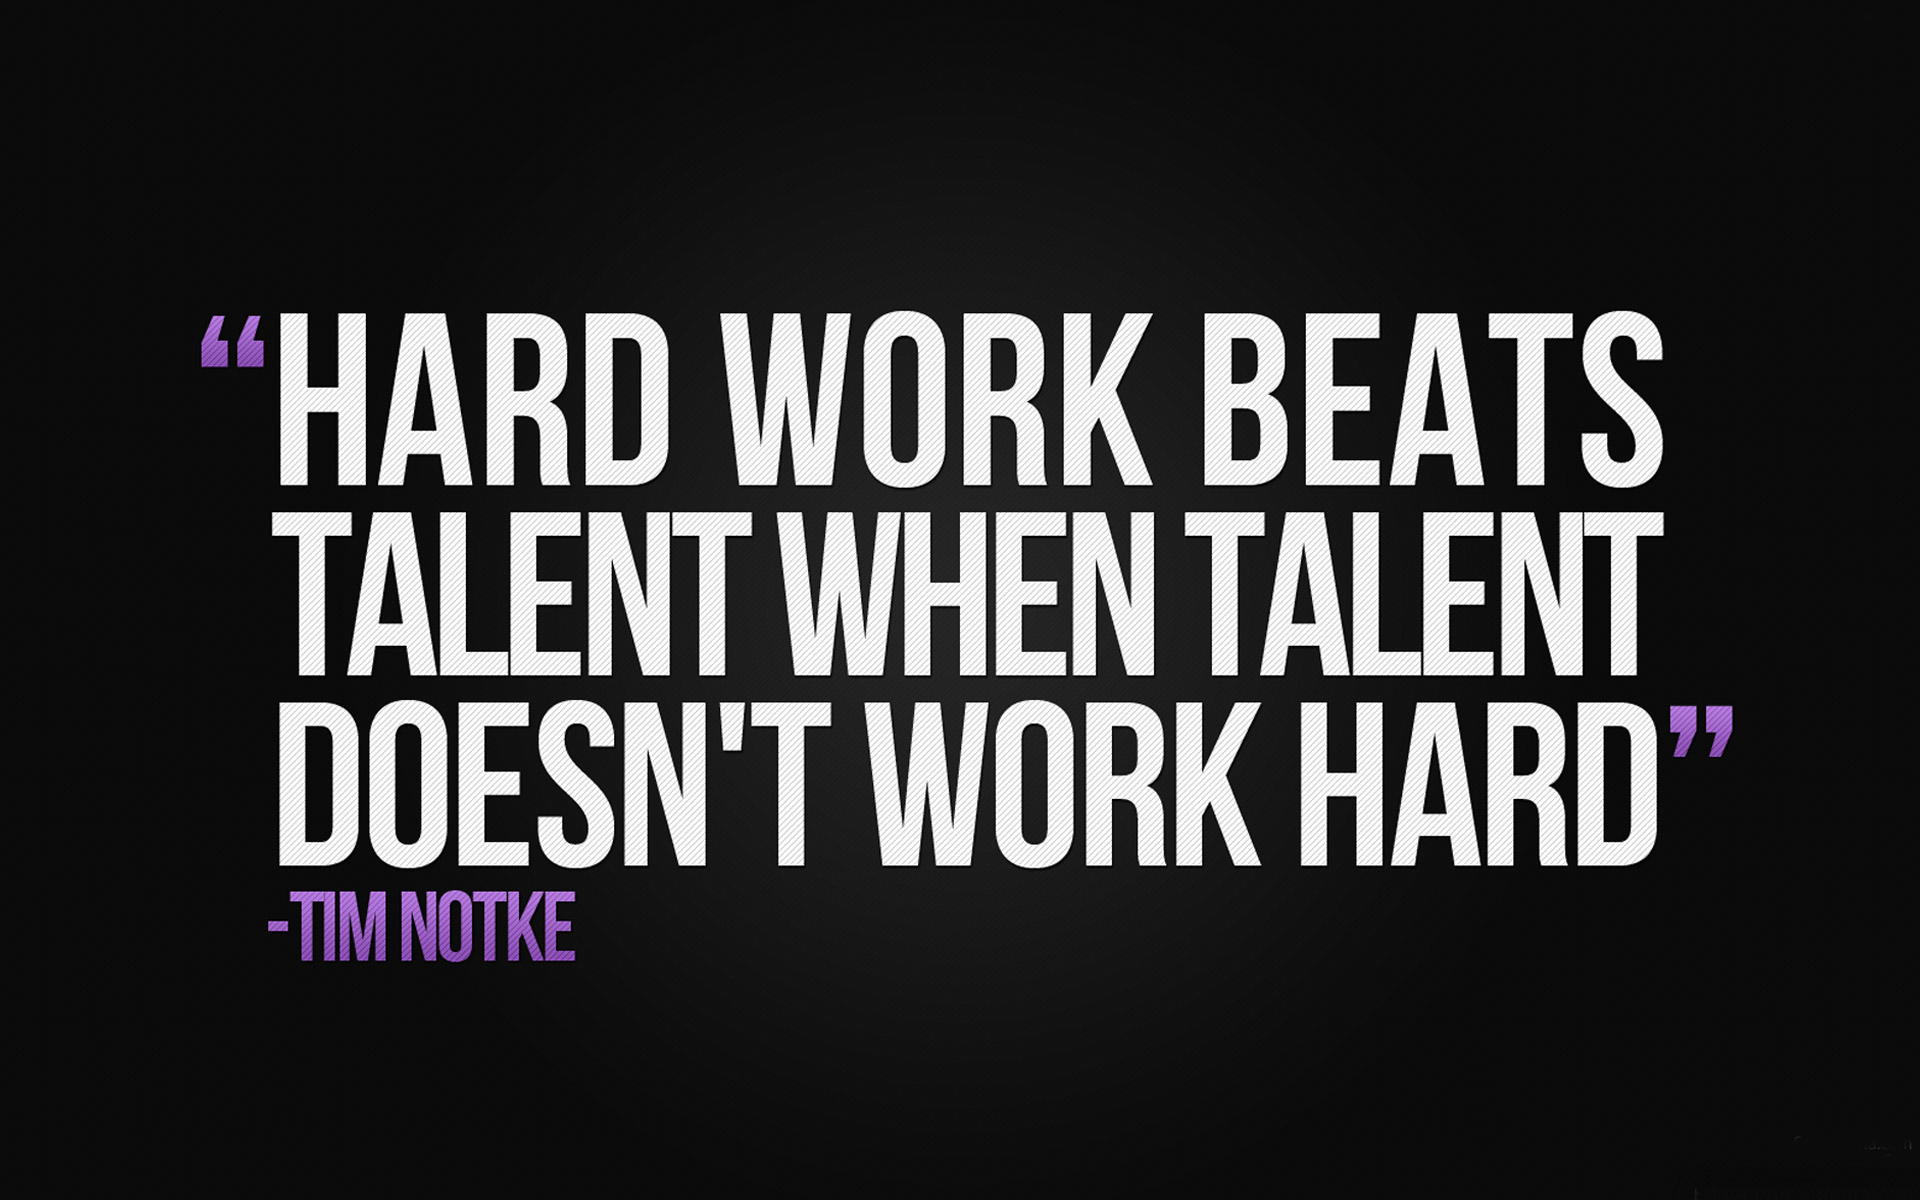 [Image] HARD WORK vs TALENT